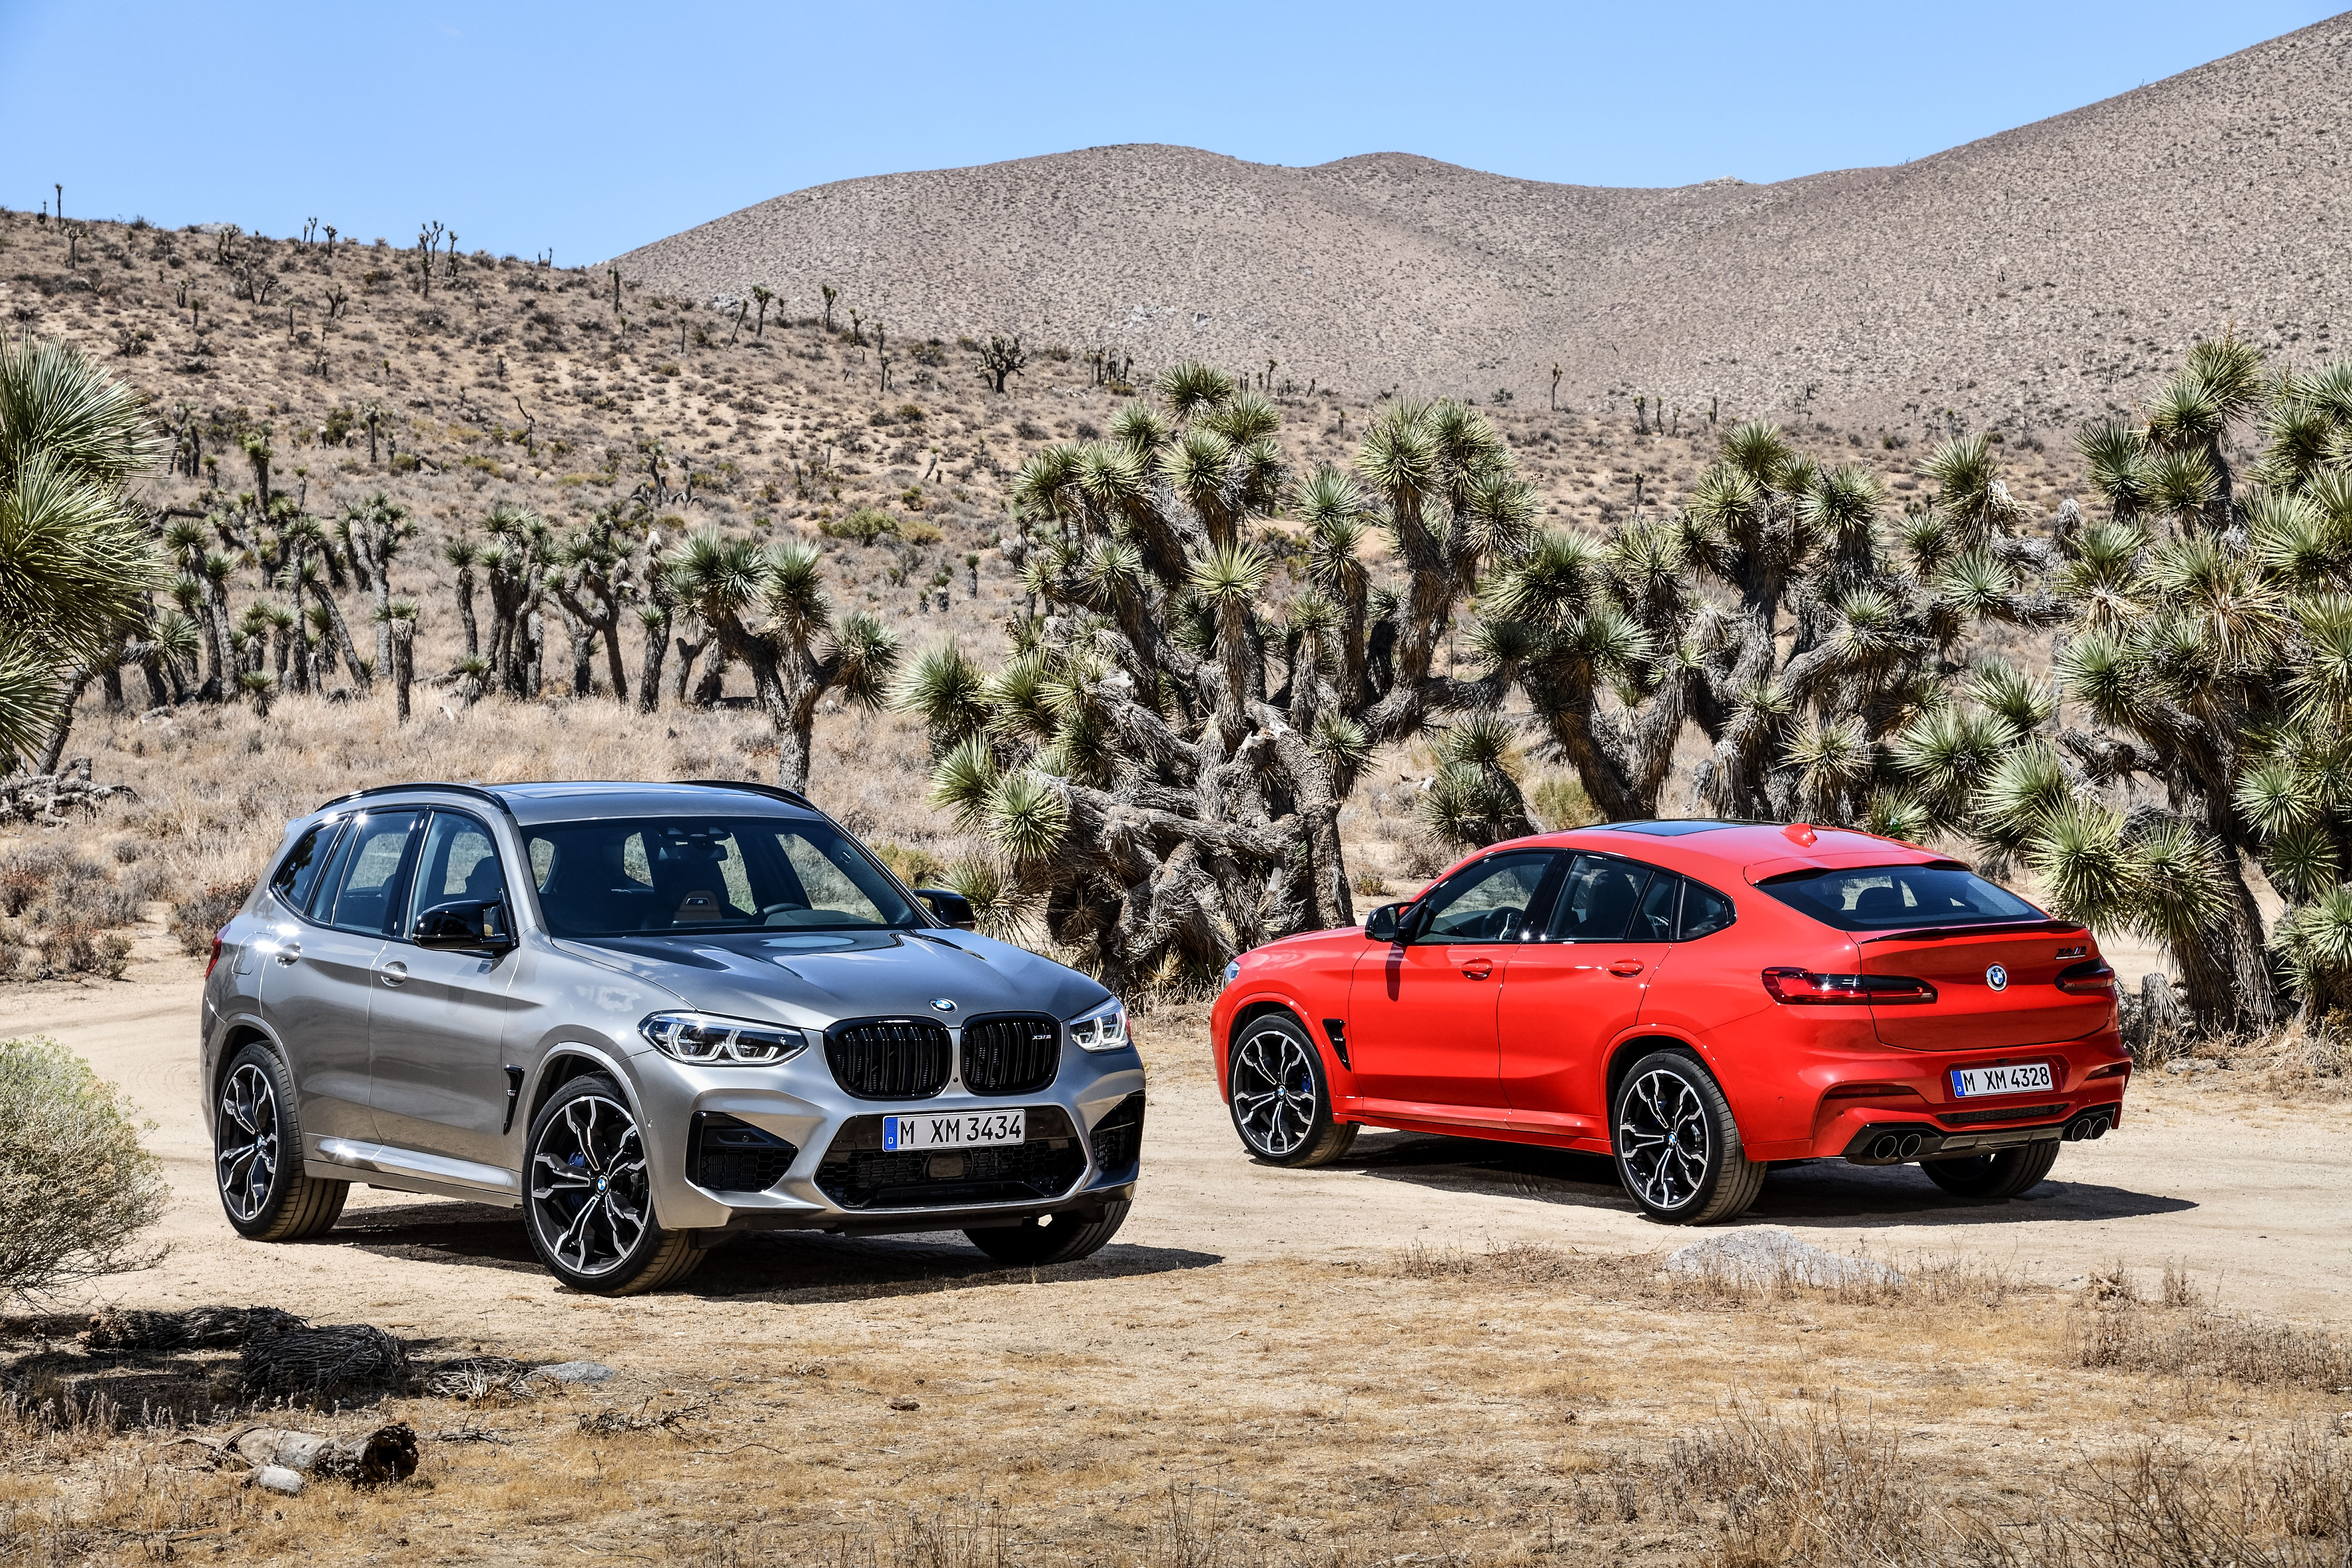 2020 Bmw X3 M And X4 M Unveiled Brings More Than 500 Ponies In Competition Trim Top Speed Bmw X3 New Bmw Bmw